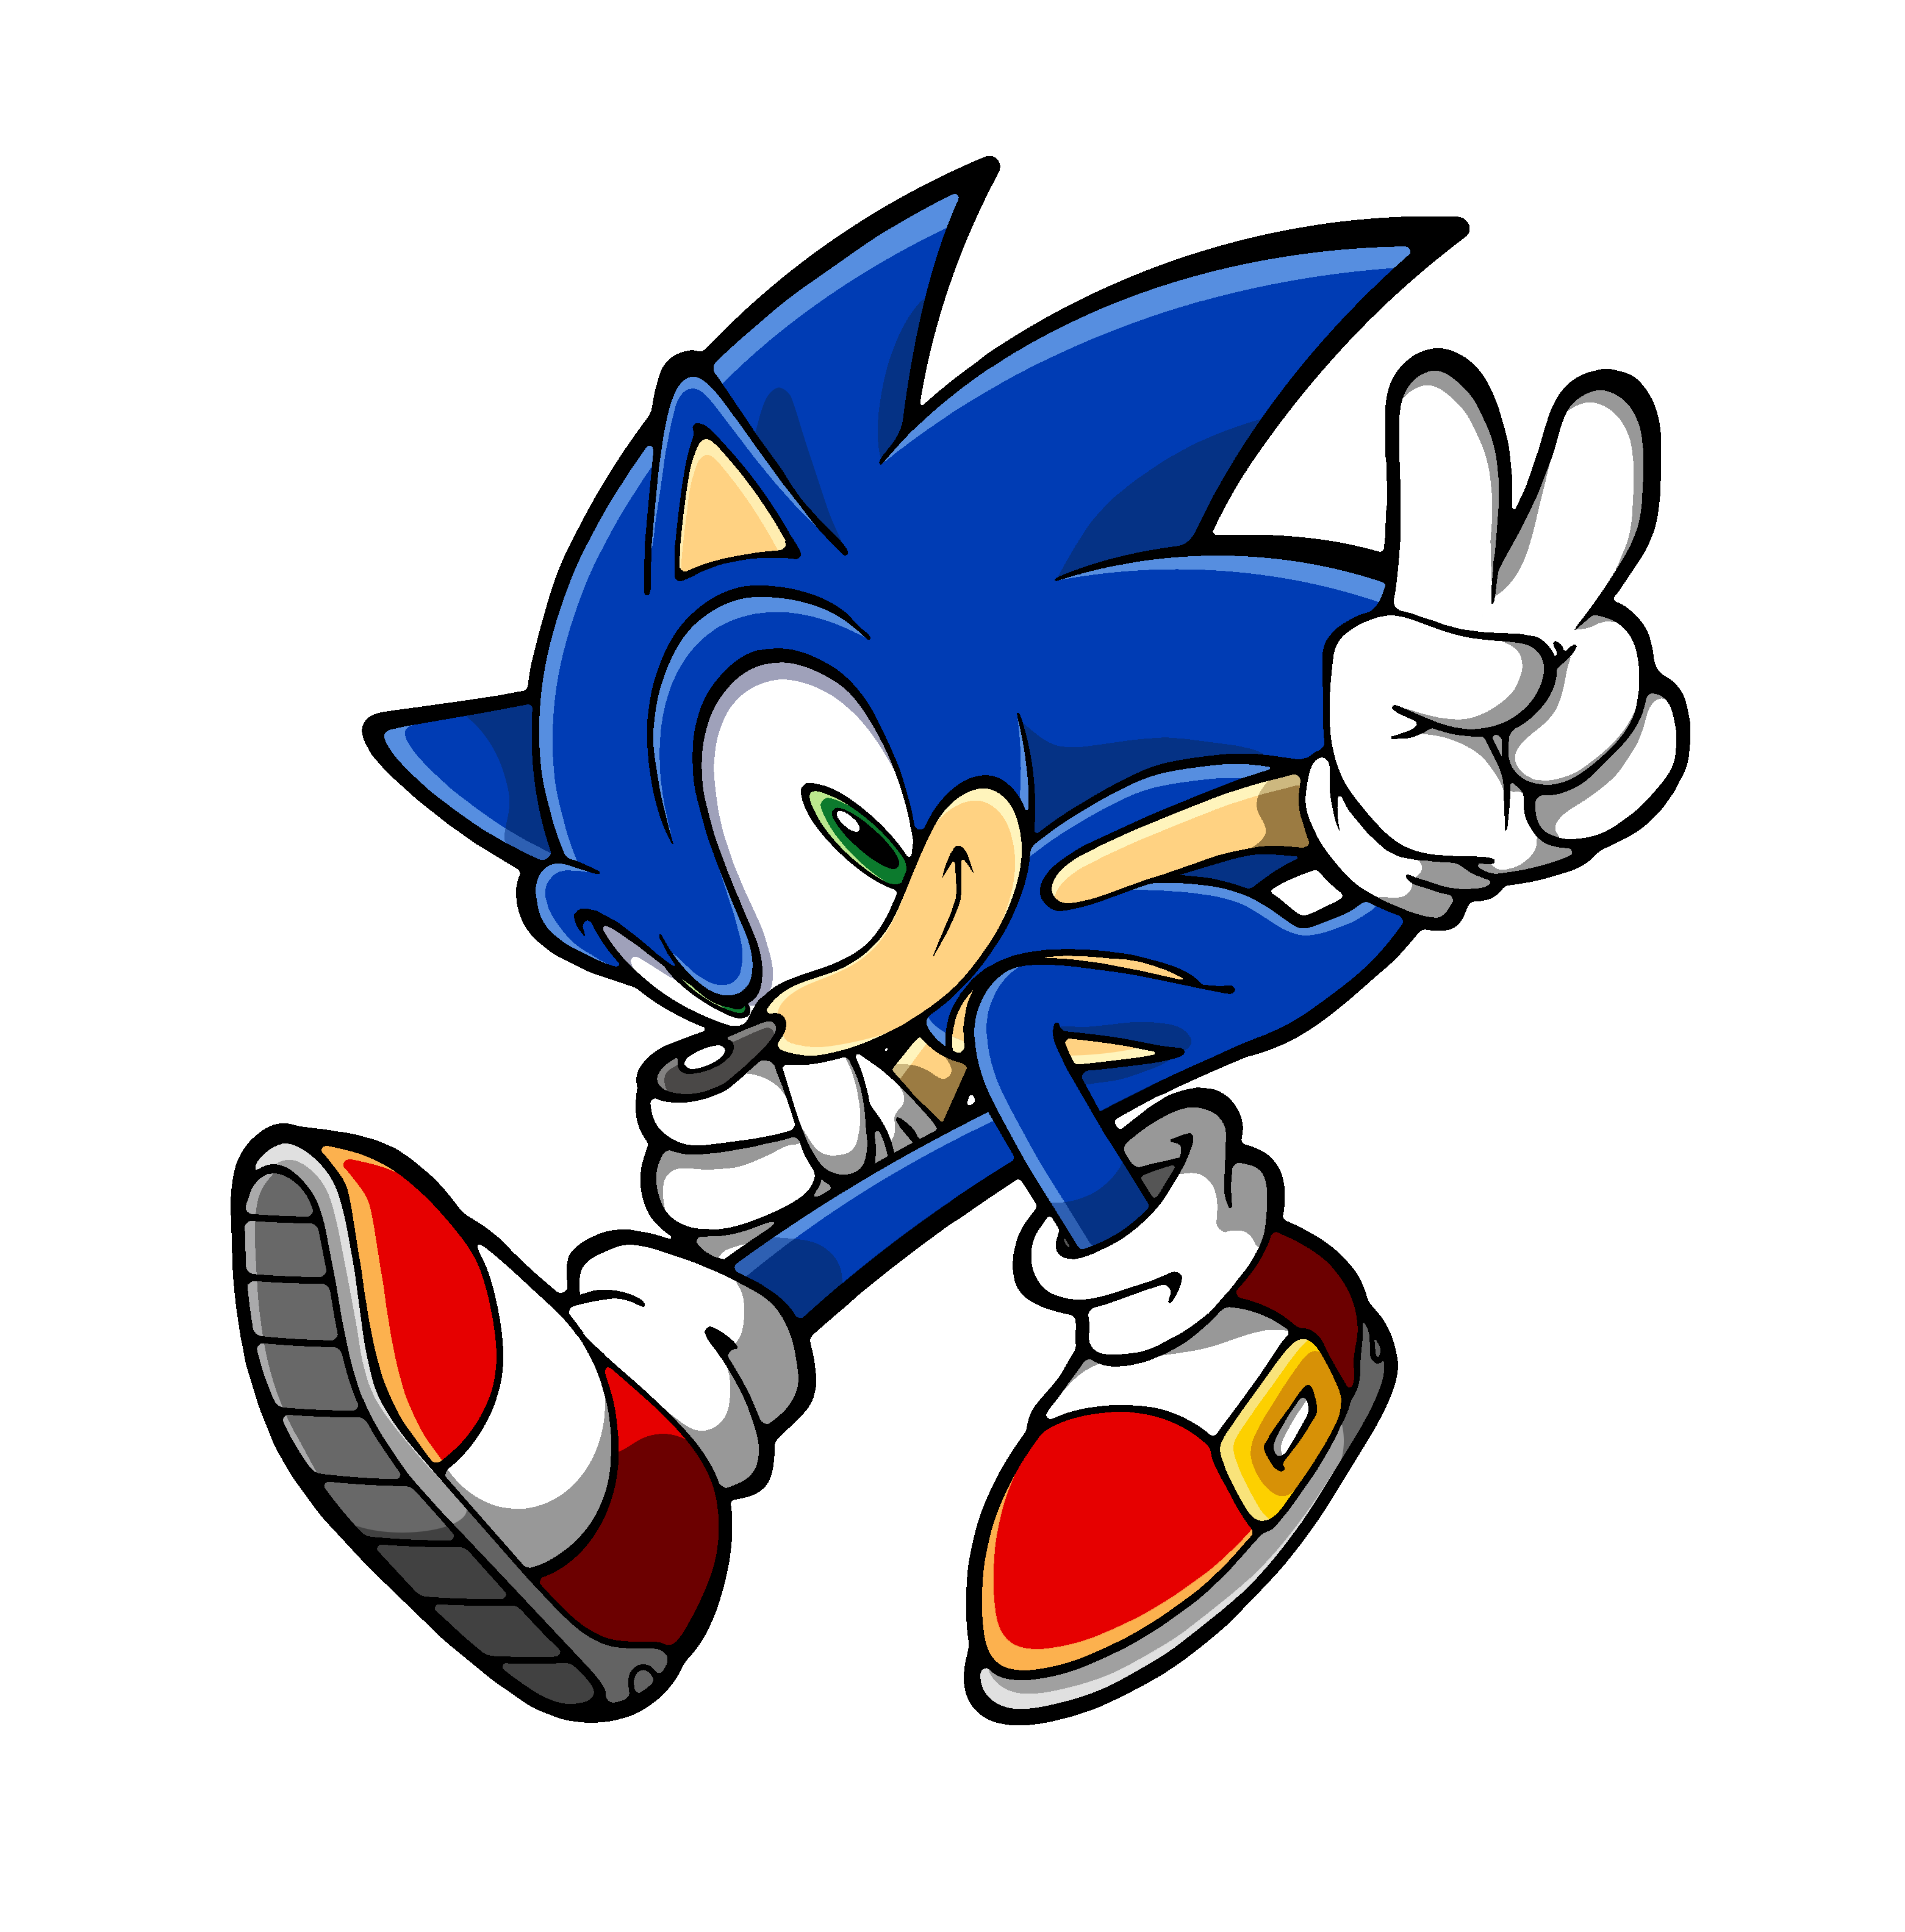 Sonic The Hedgehog Transparent PNG Image - Sonic The Hedgehog PNG